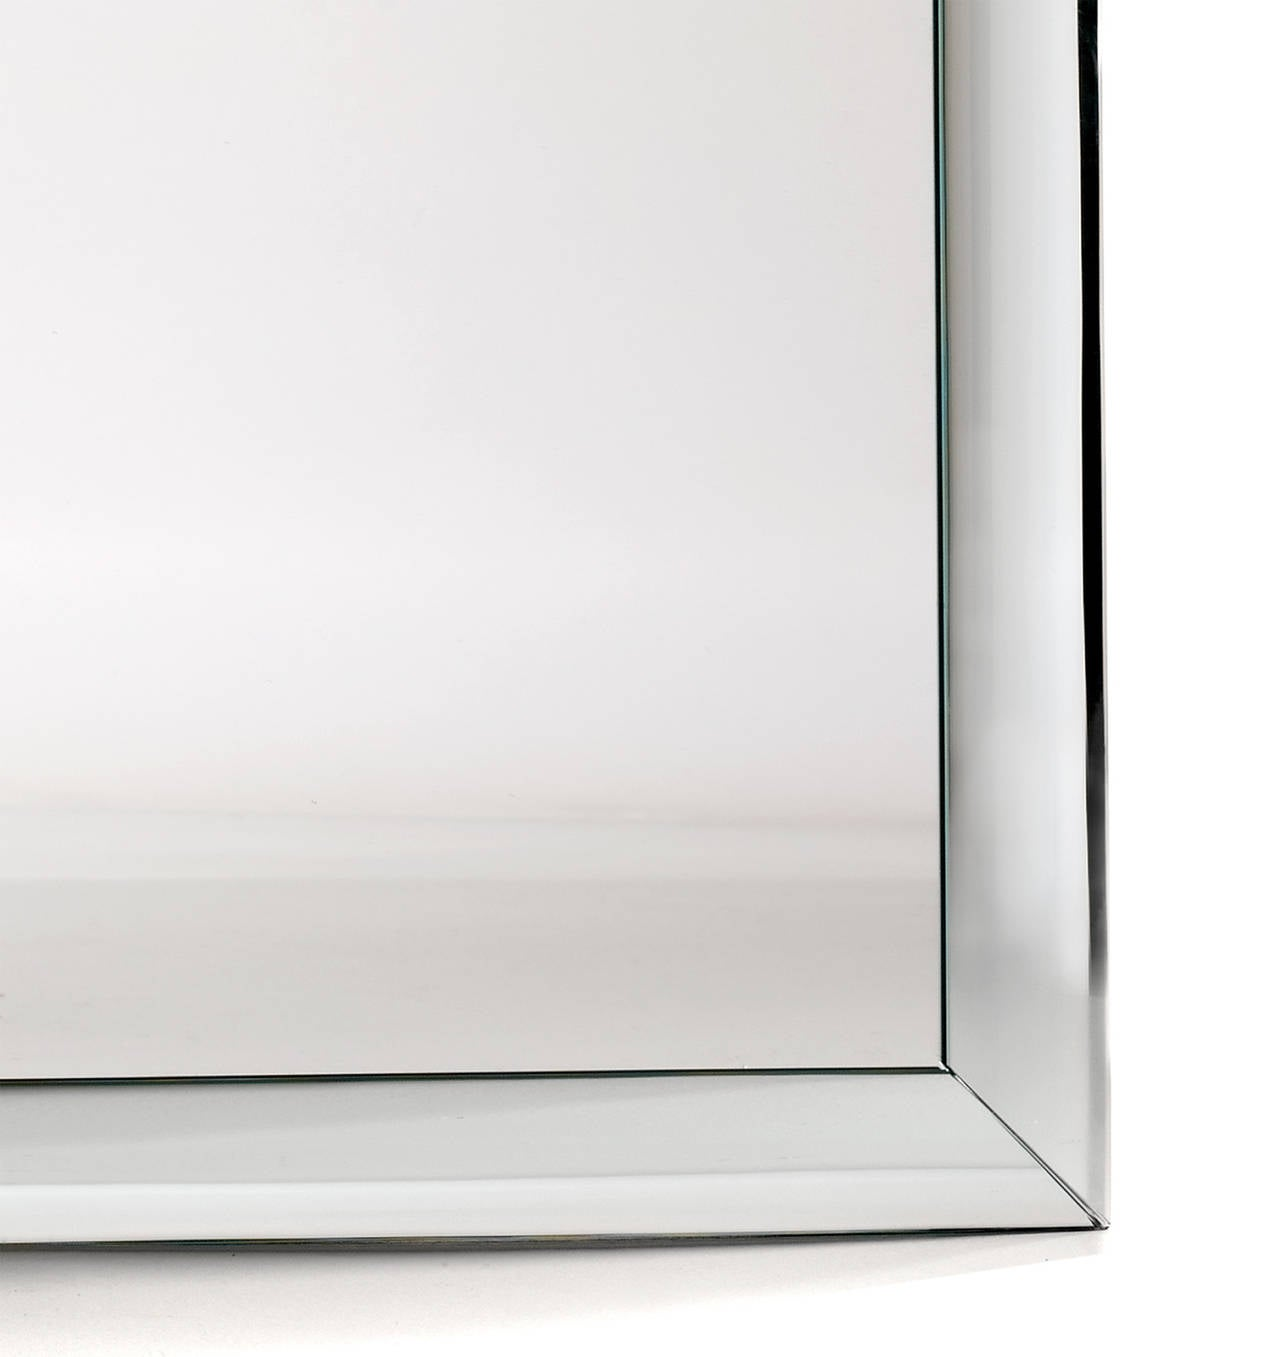 Queen Anne-Shaped-Top Bullnose Mirror 2